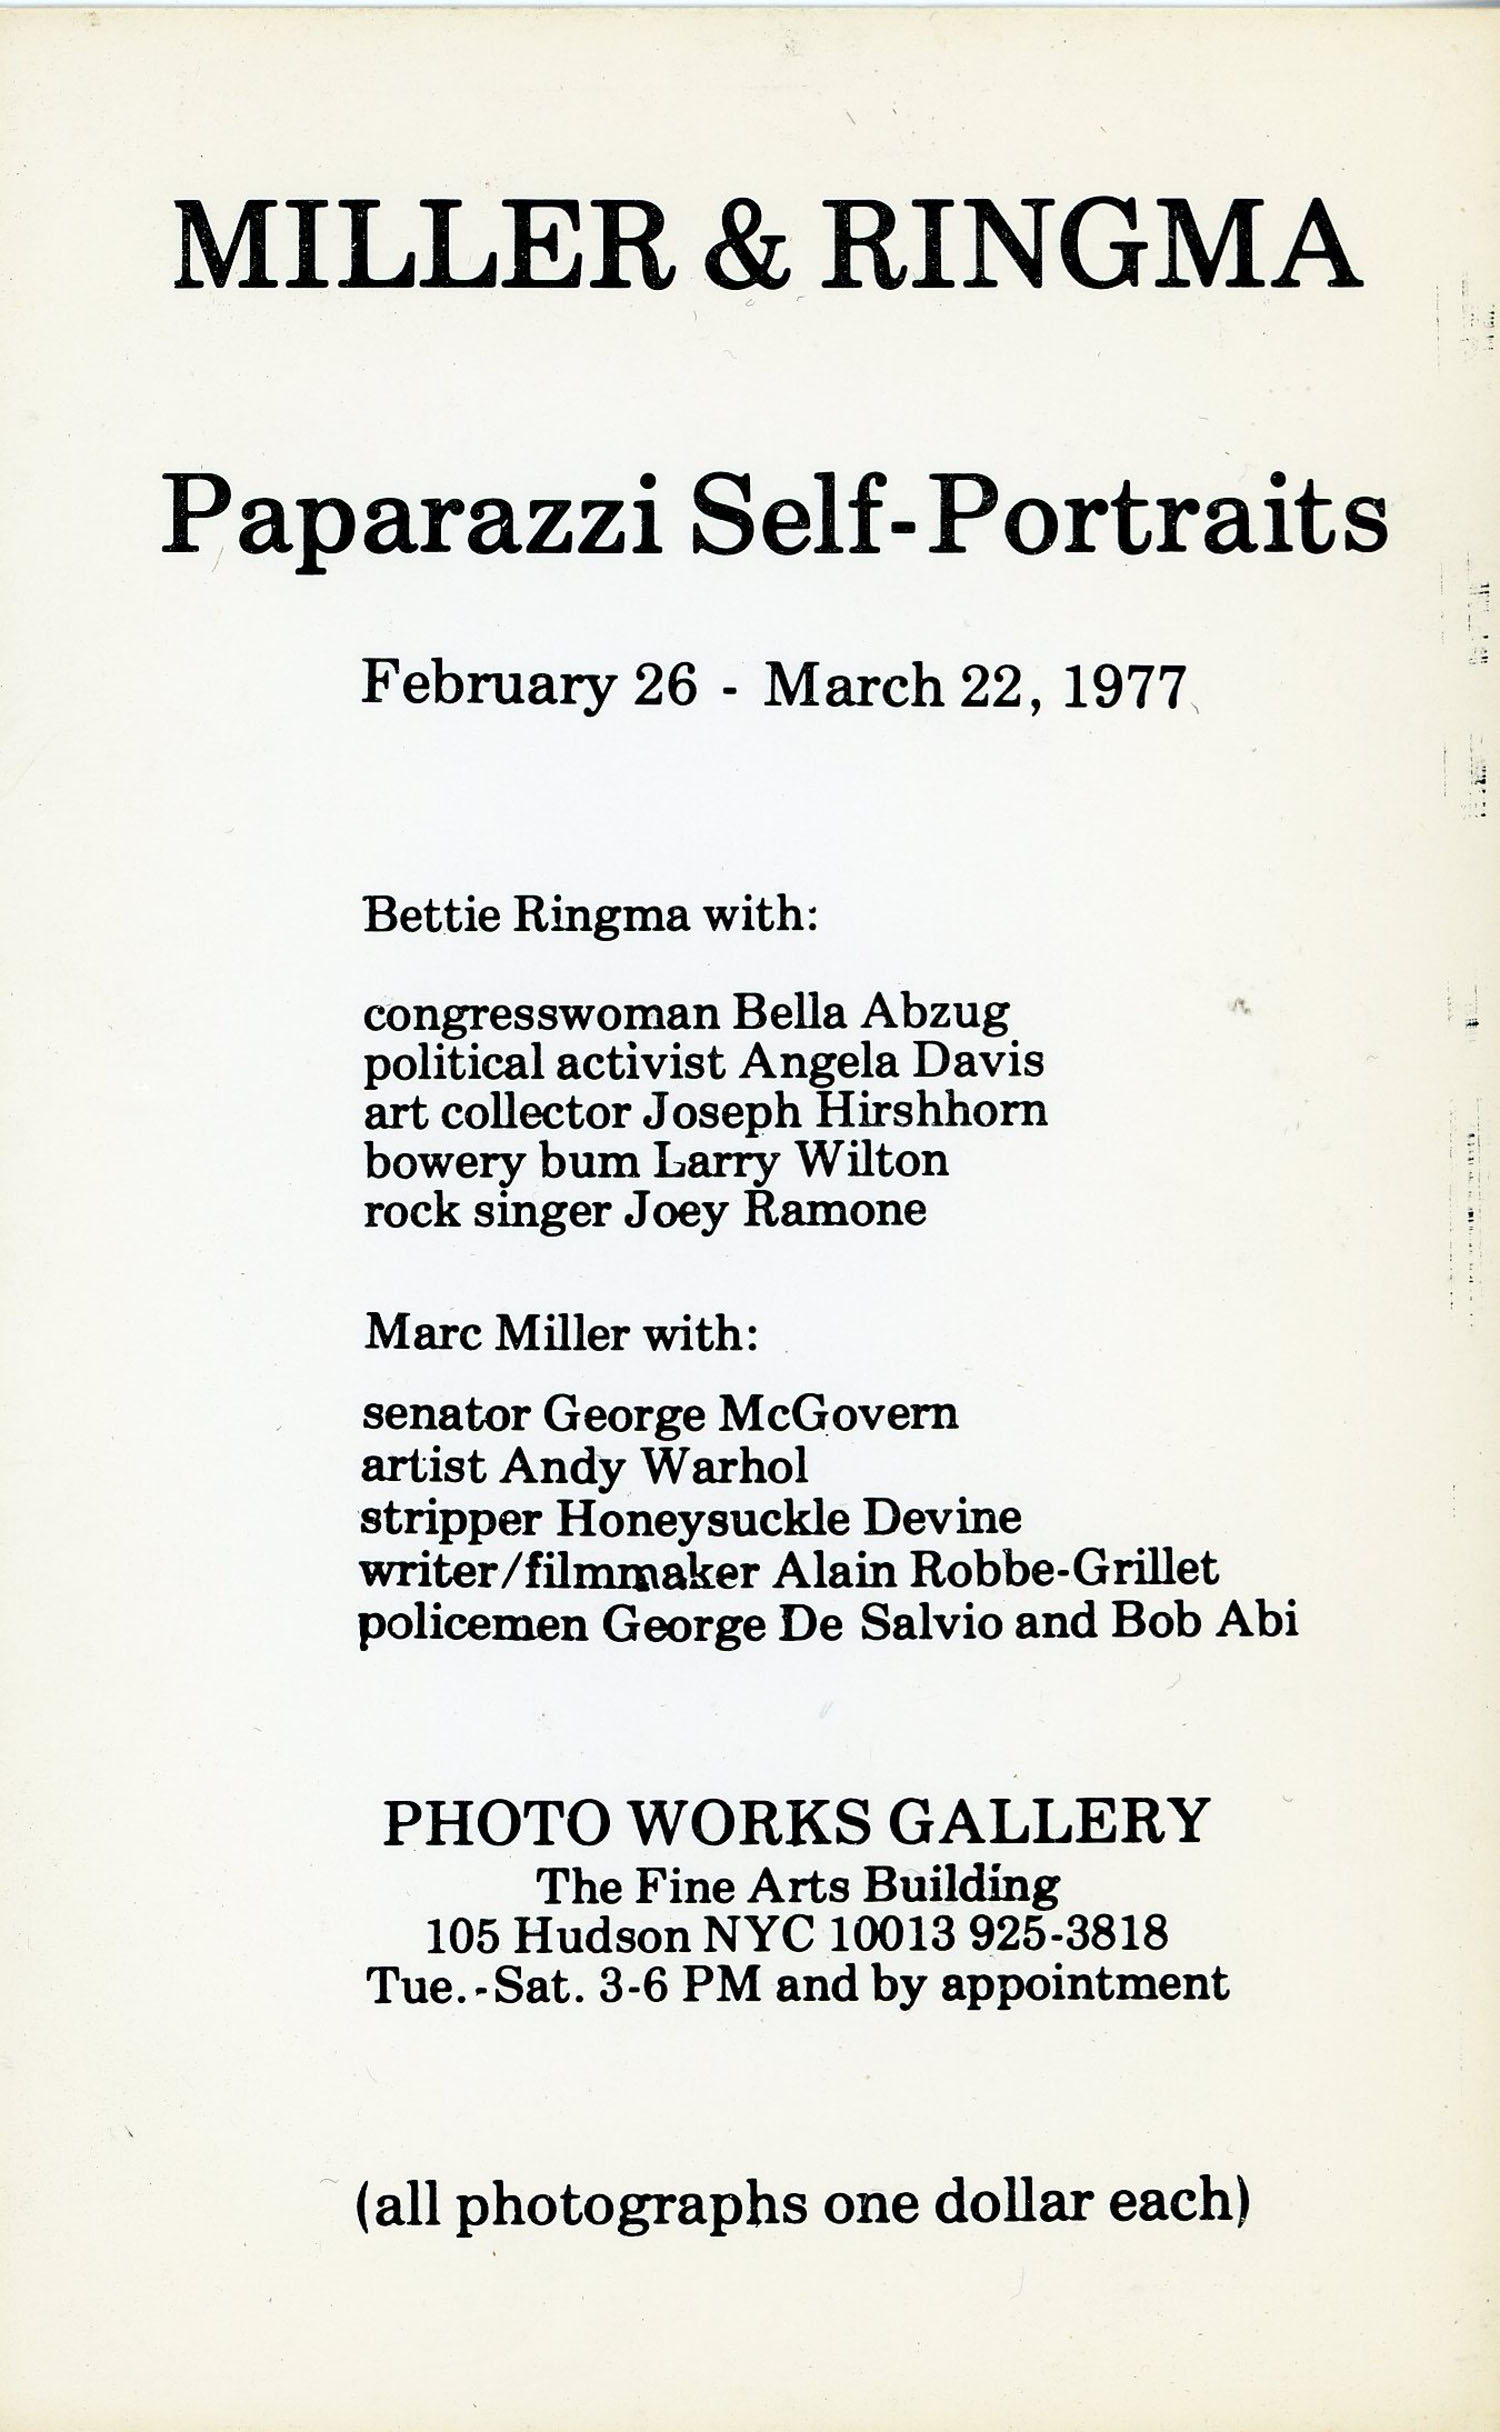 Postcard for 'Paparazzi Self-Portraits' at Photo Works Gallery, 1977